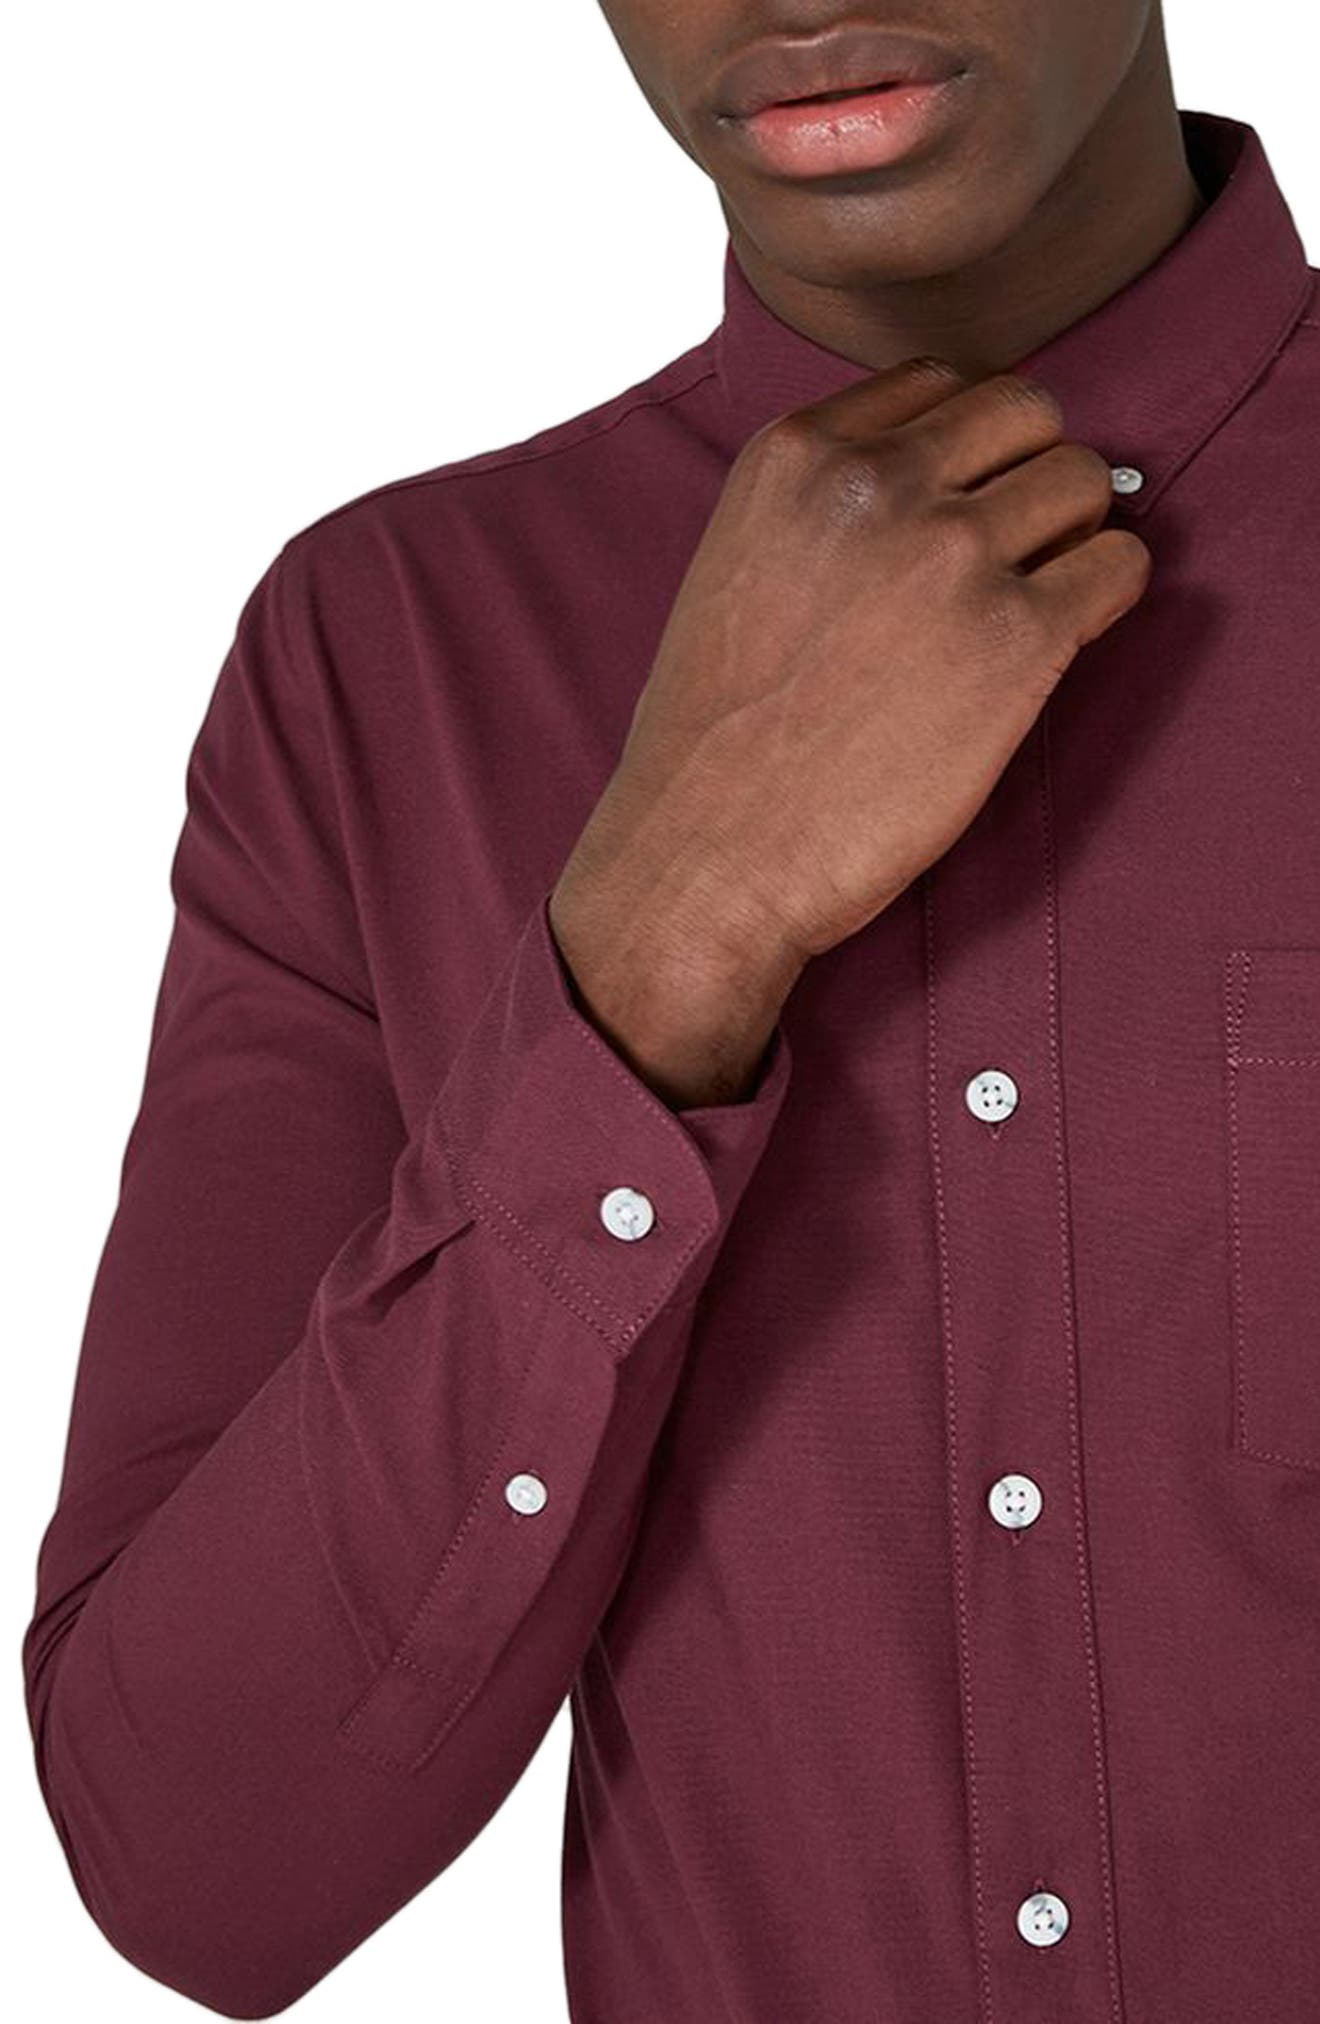 Muscle Fit Oxford Shirt,                             Alternate thumbnail 3, color,                             Burgundy